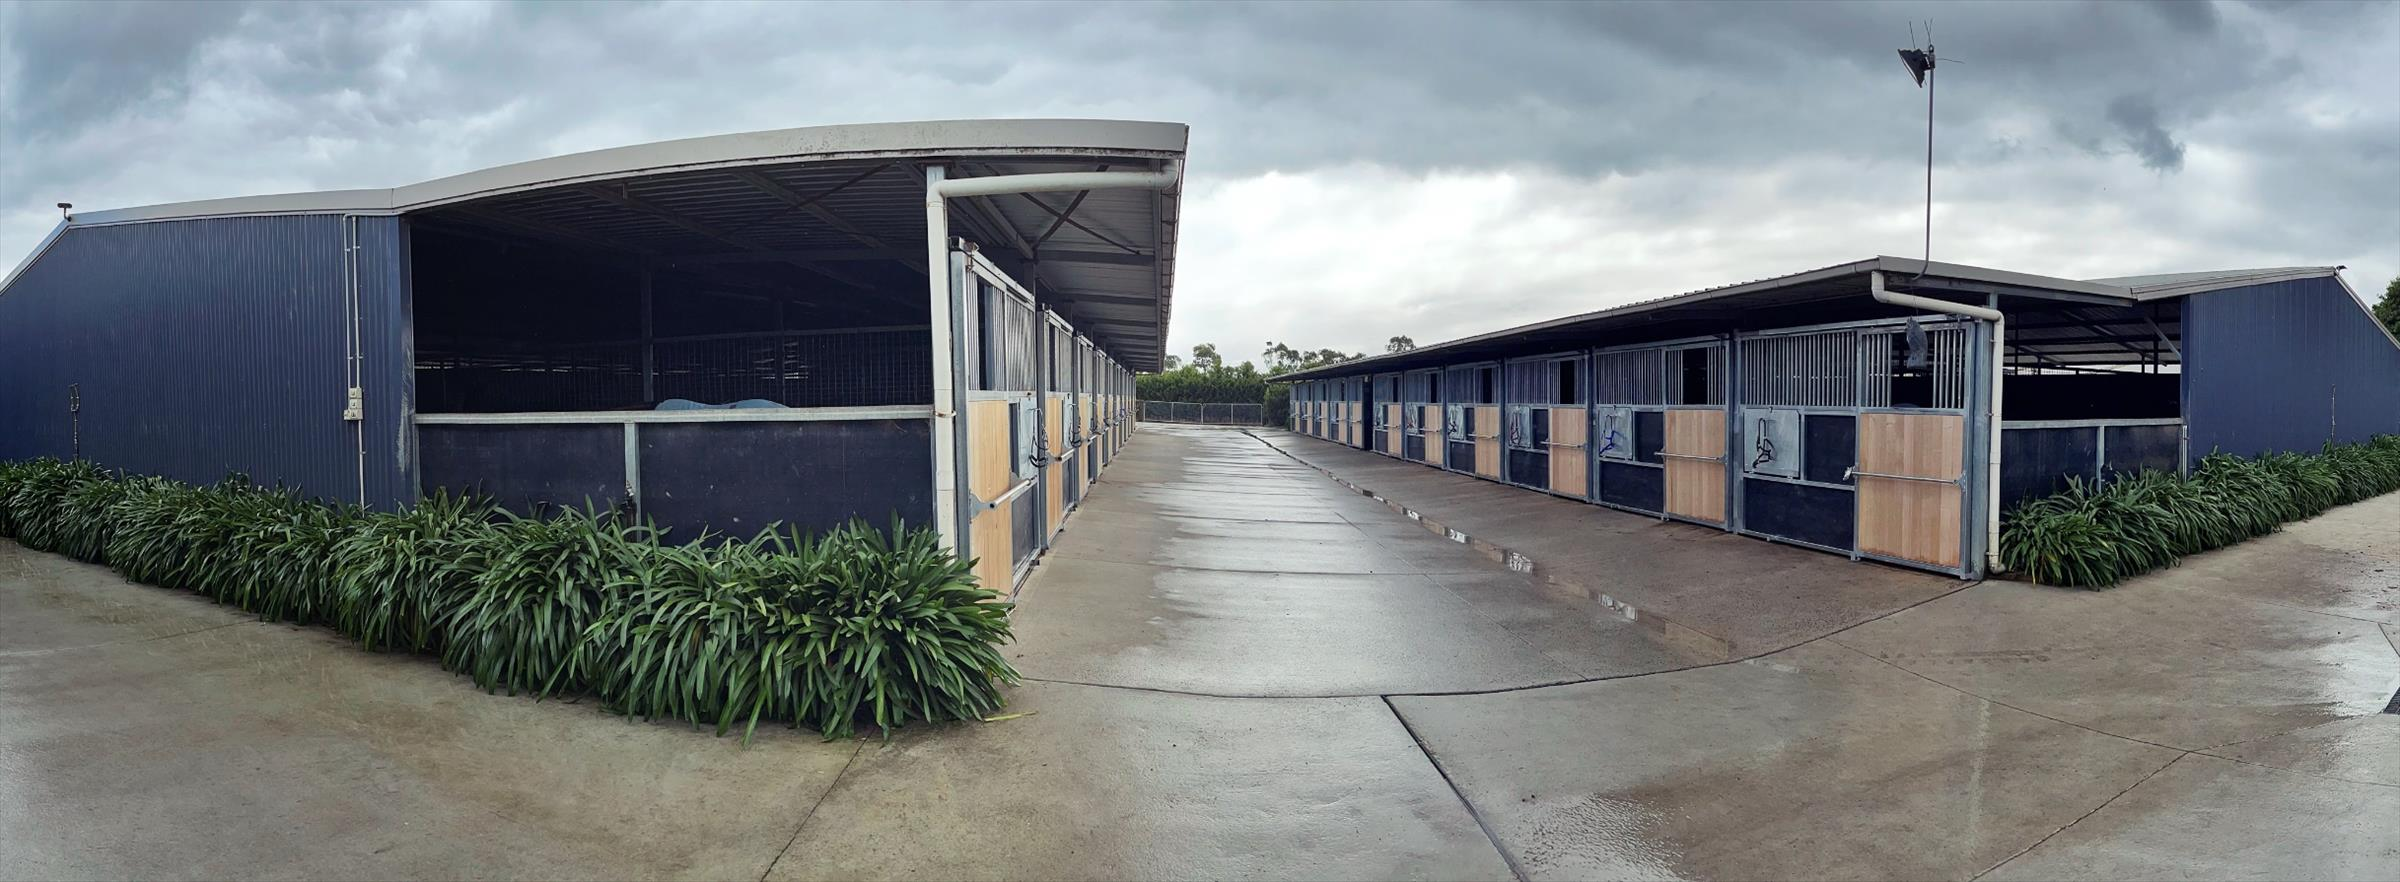 Stables - Boxes are approximately 10 x 3.6 metres